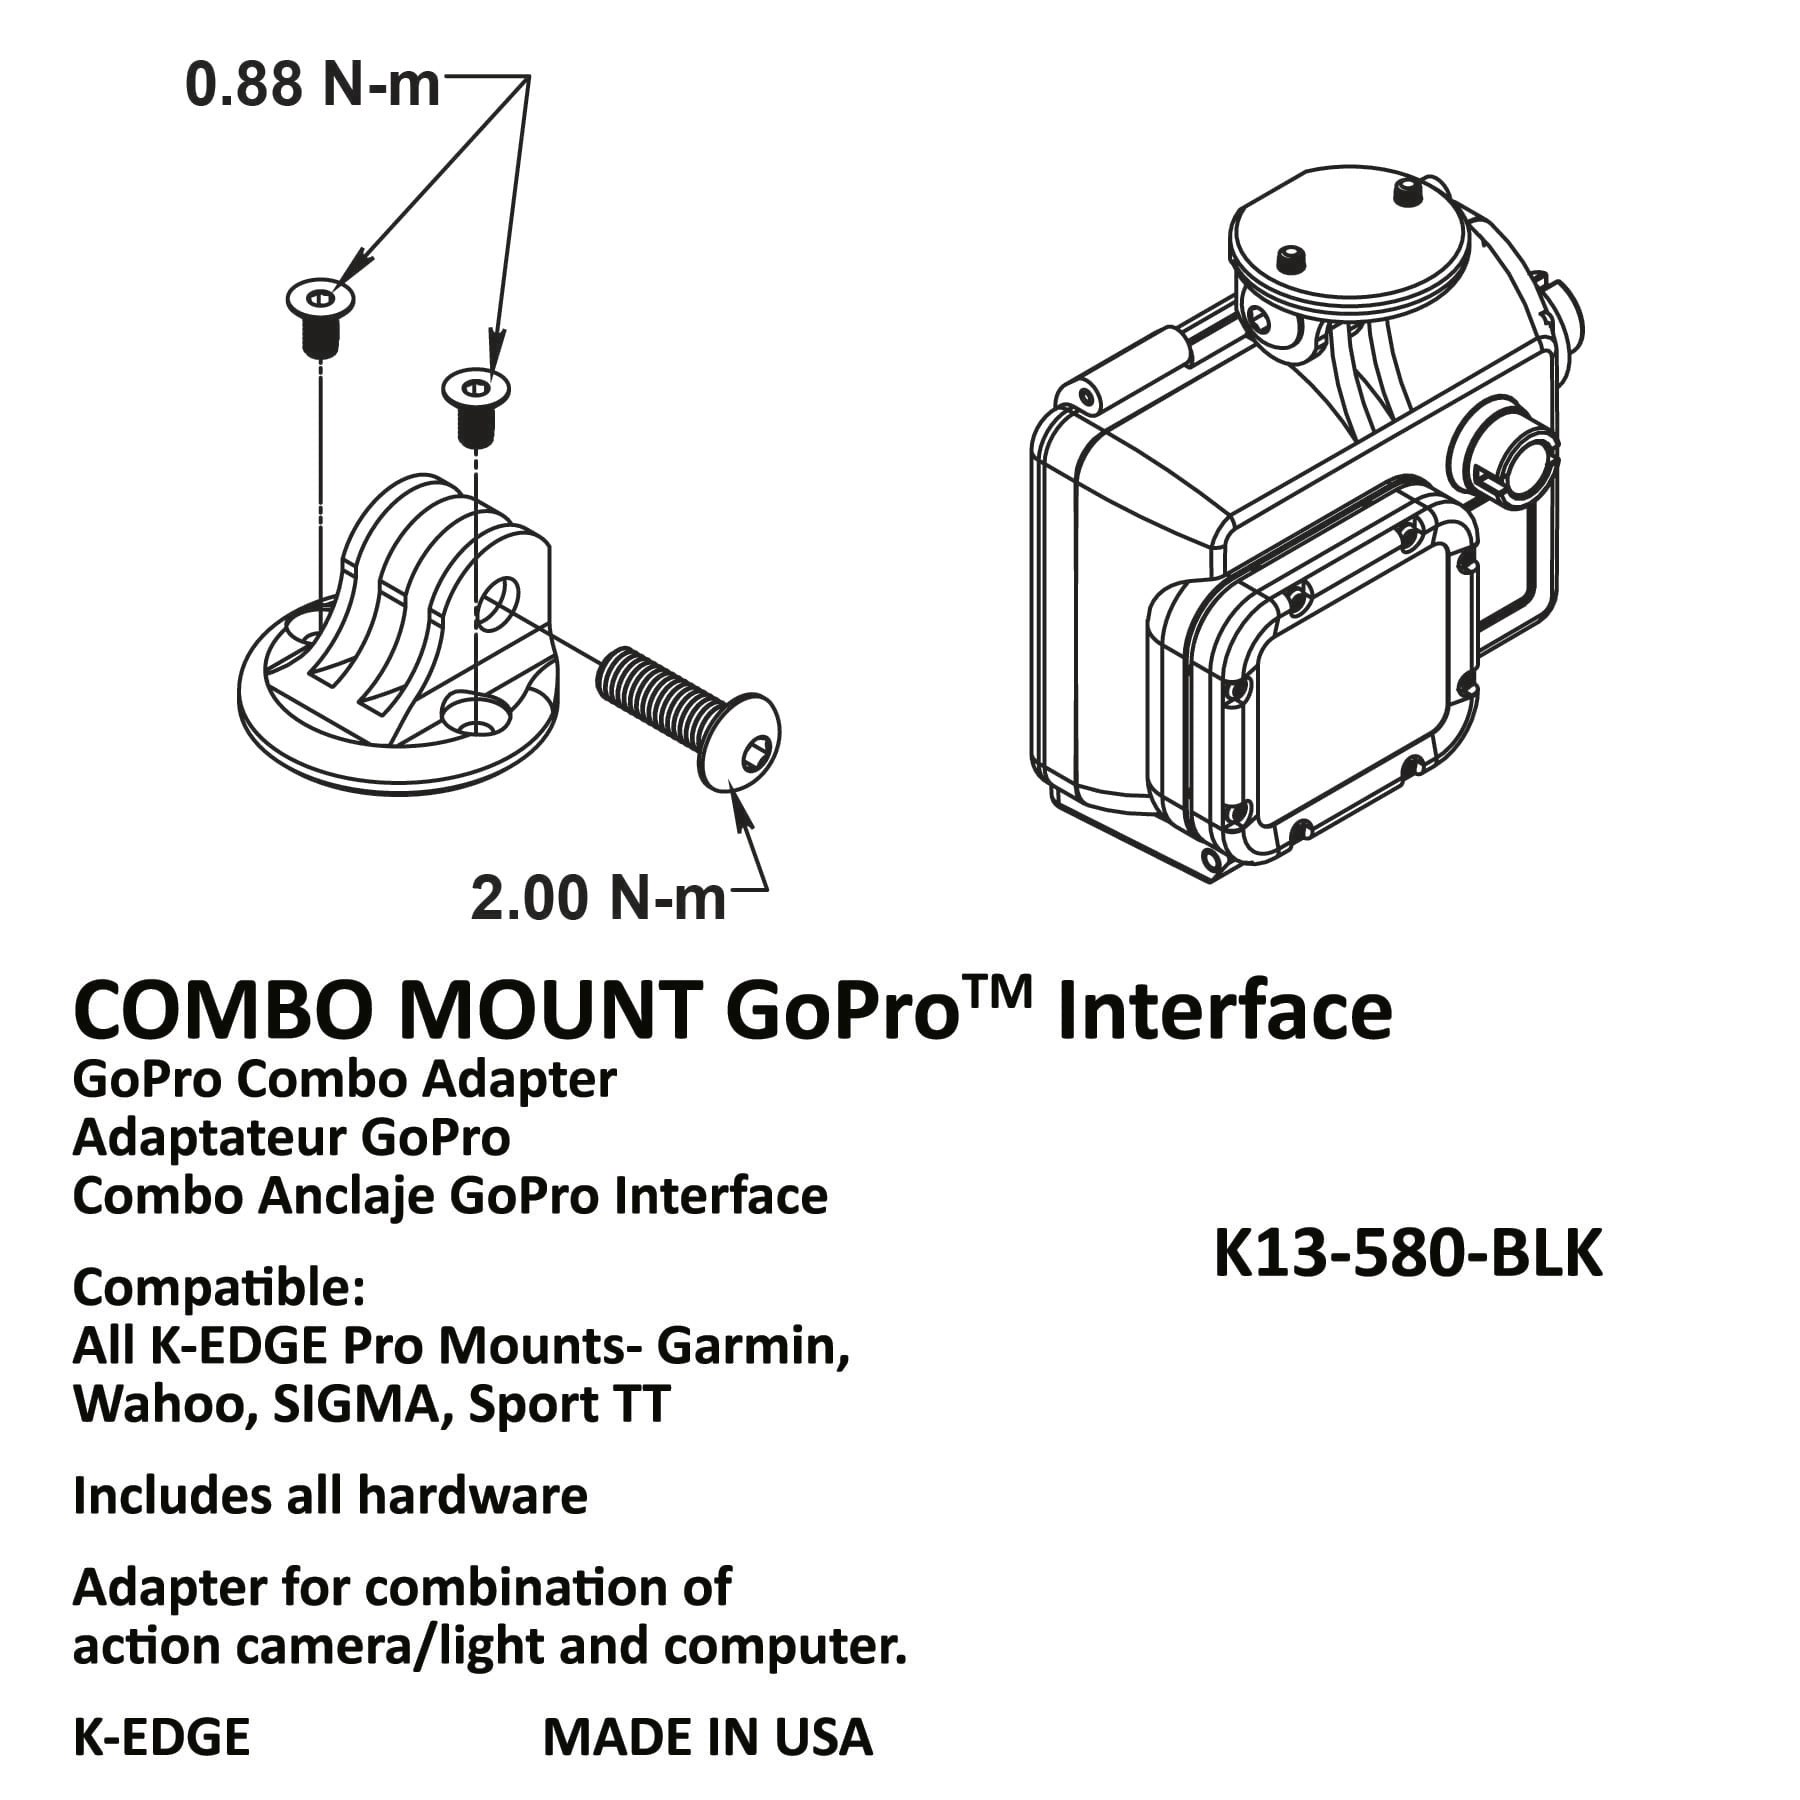 K-EDGE GoPro Combo Mount Interface